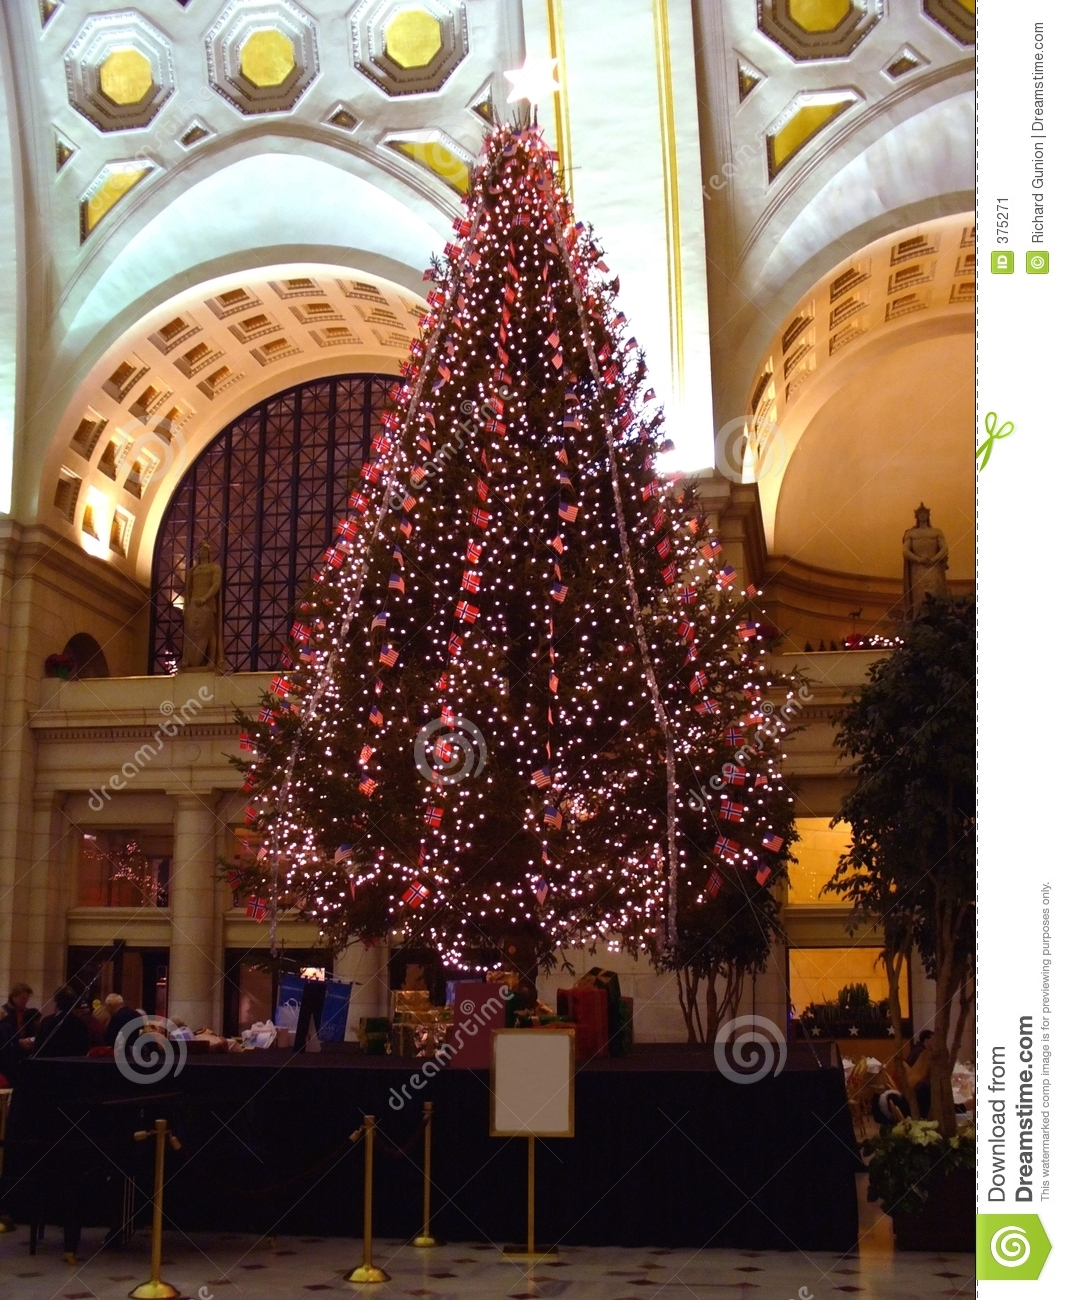 Norway Christmas Tree stock image. Image of arches, station - 375271